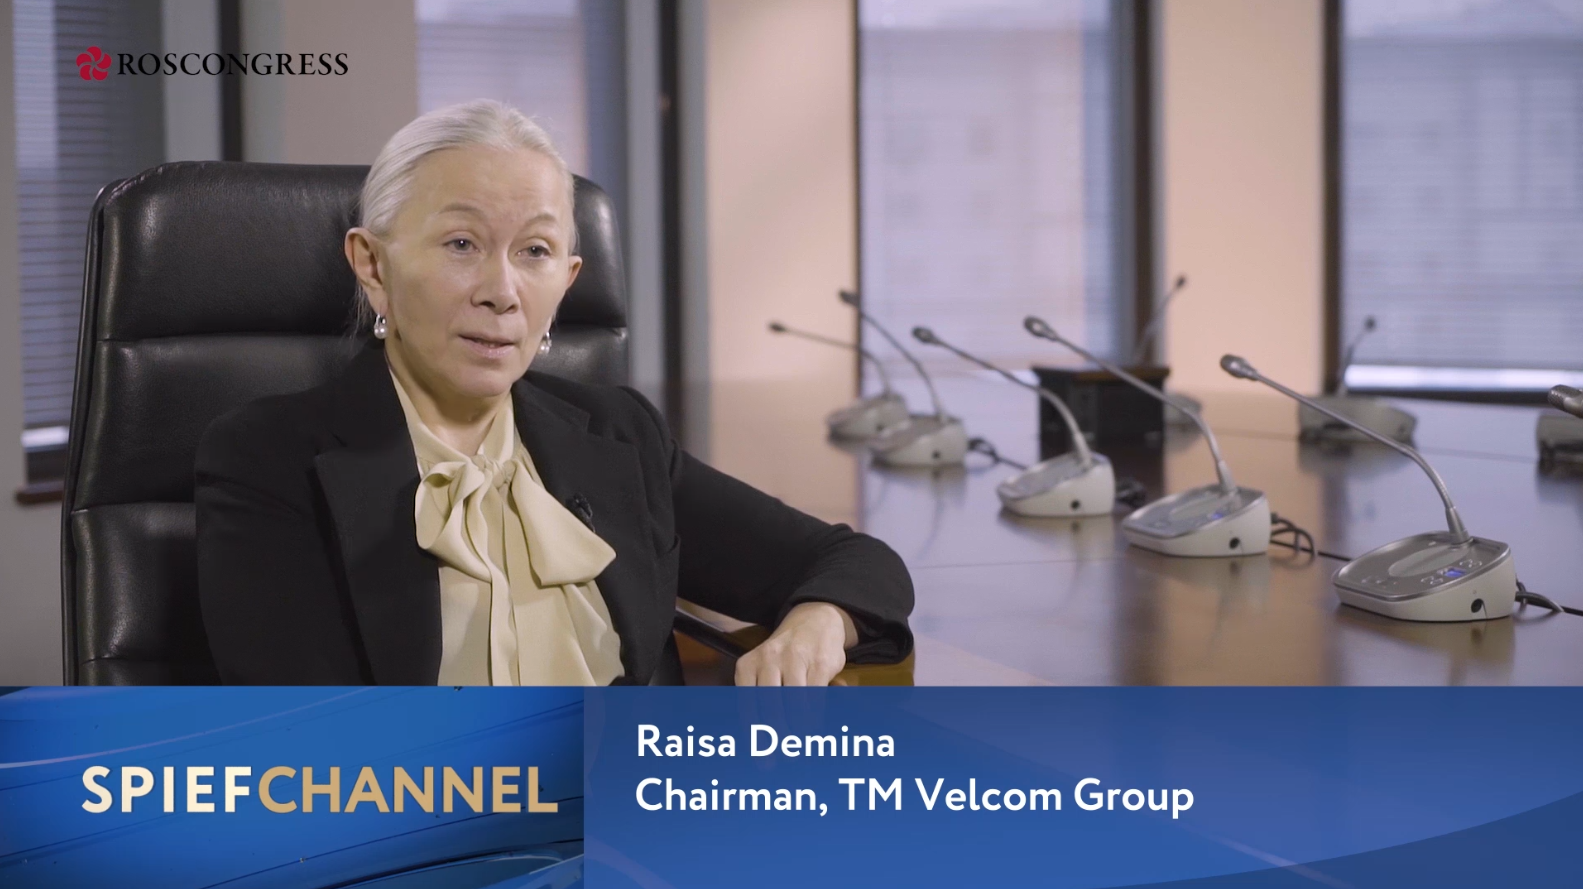 Raisa Demina, Chairman, TM Velcom Group